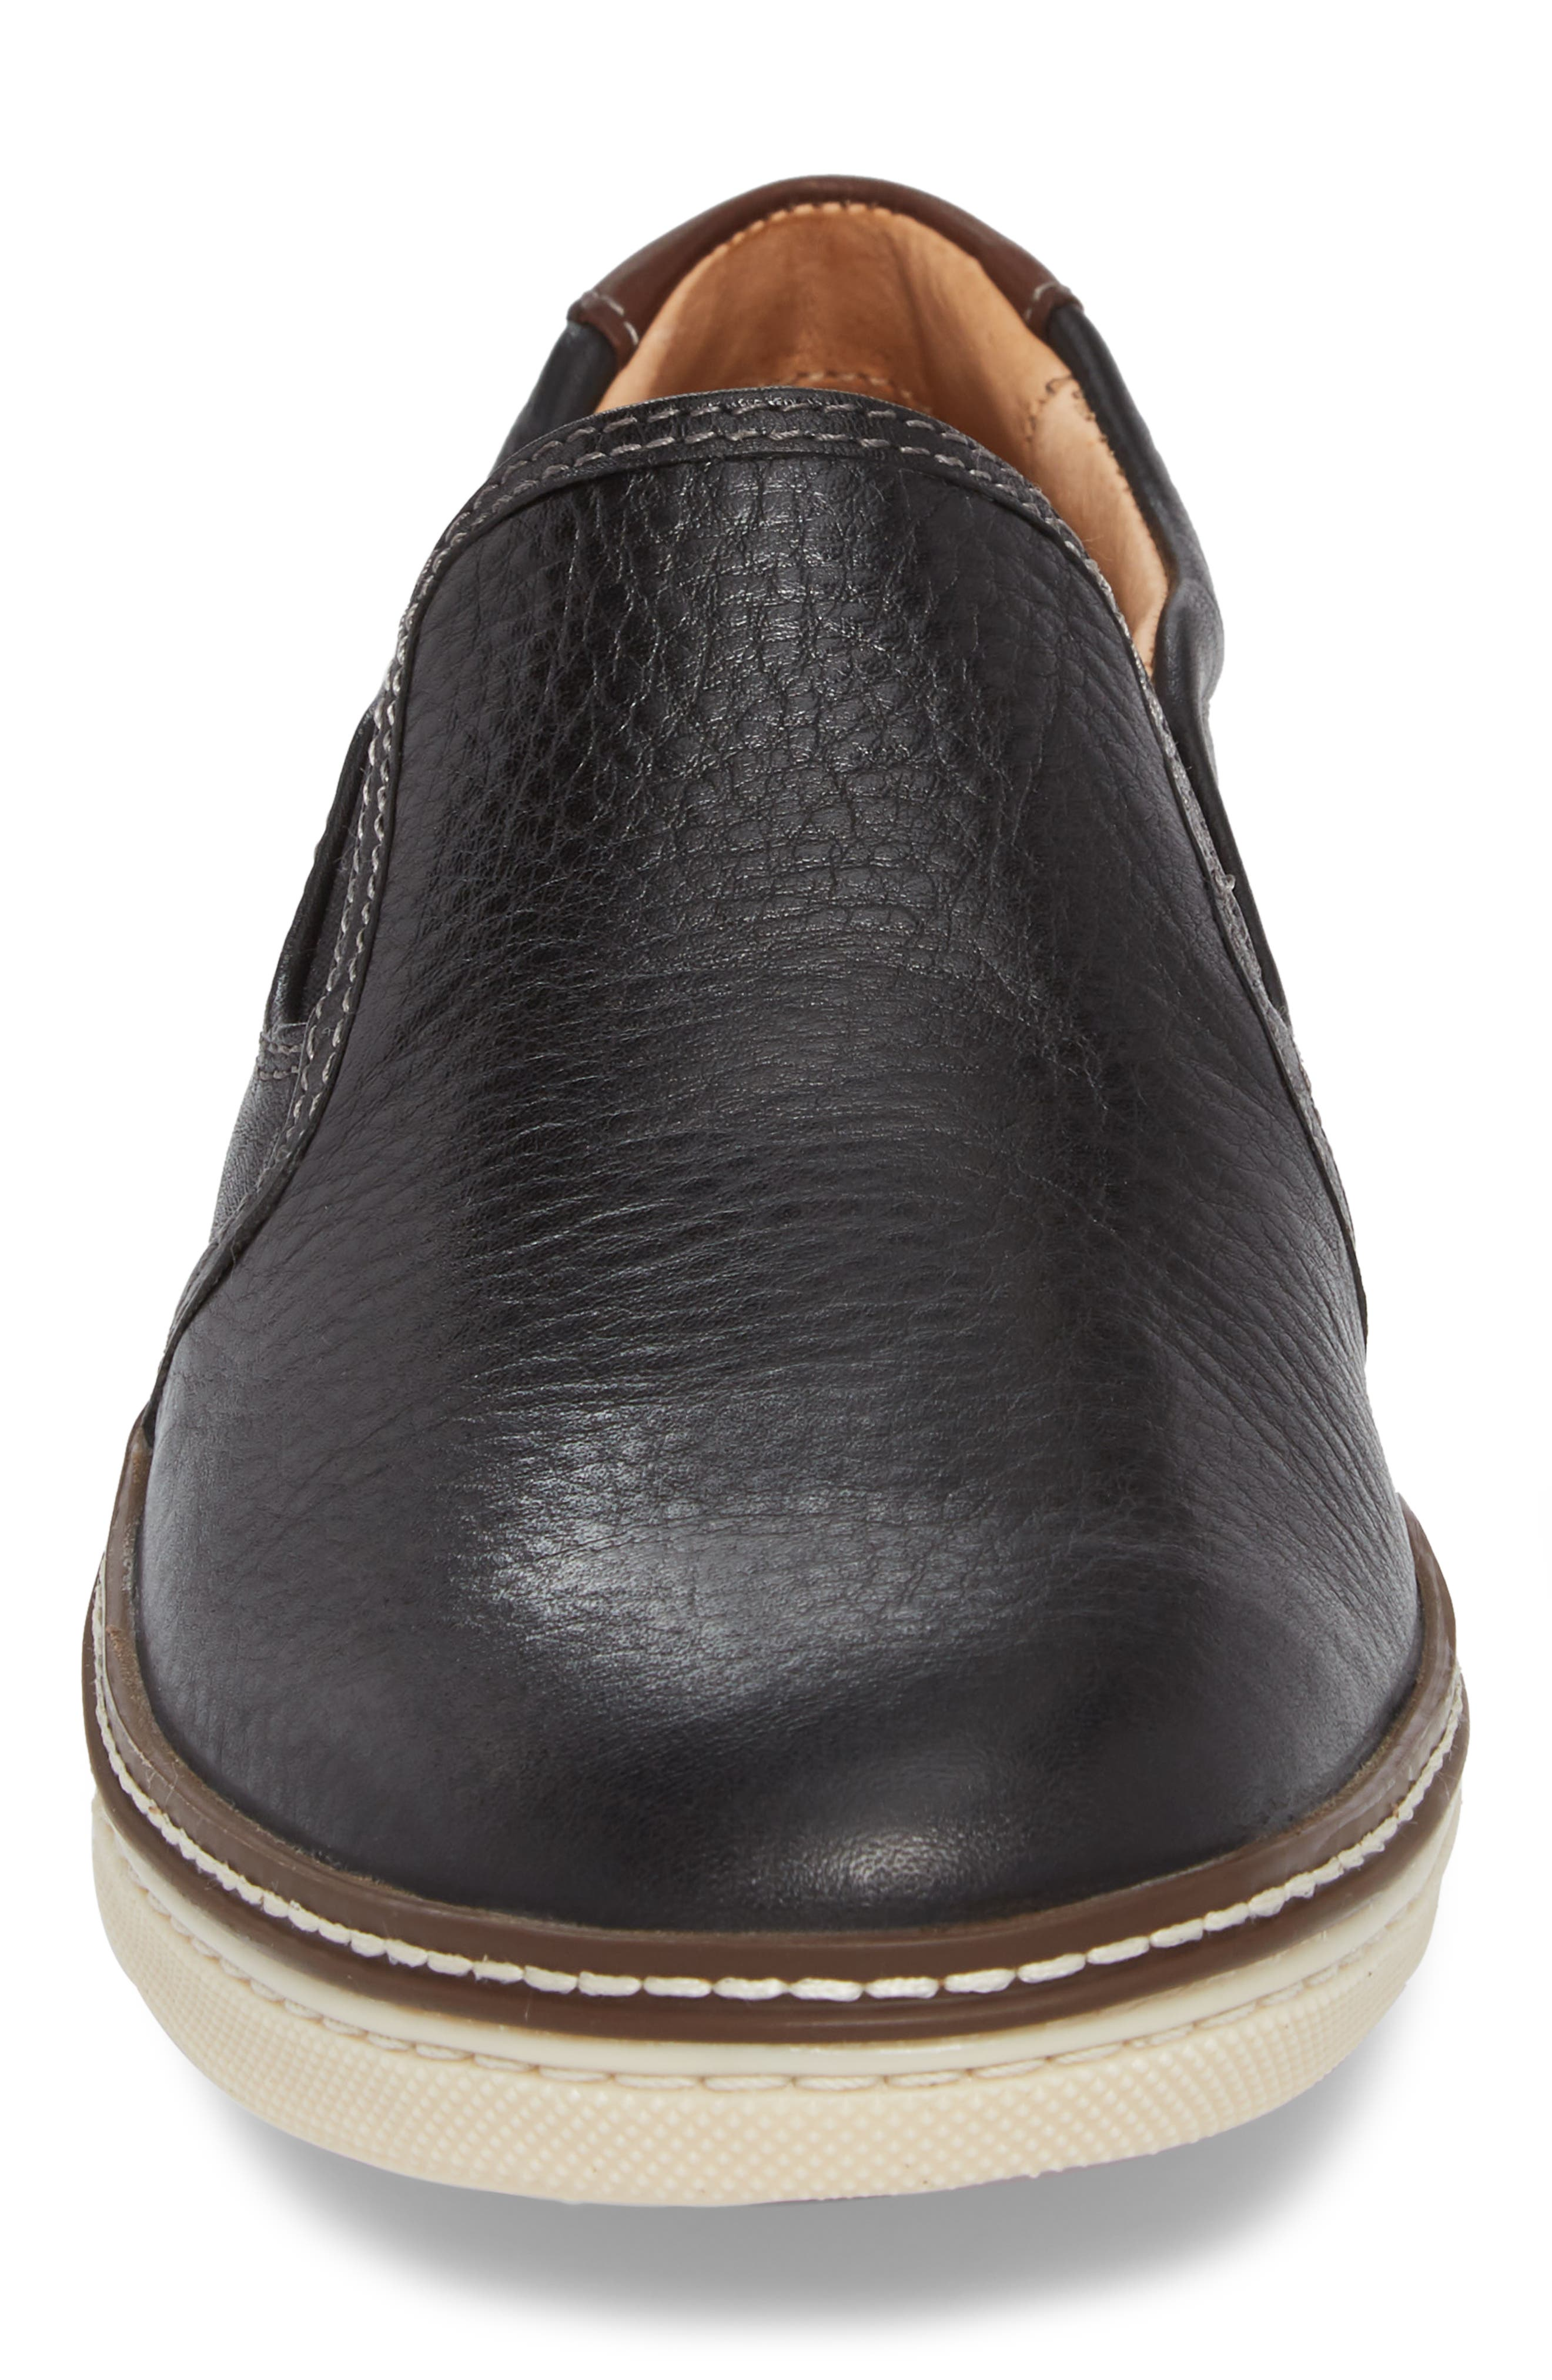 McGuffey Slip-On Sneaker,                             Alternate thumbnail 4, color,                             BLACK LEATHER